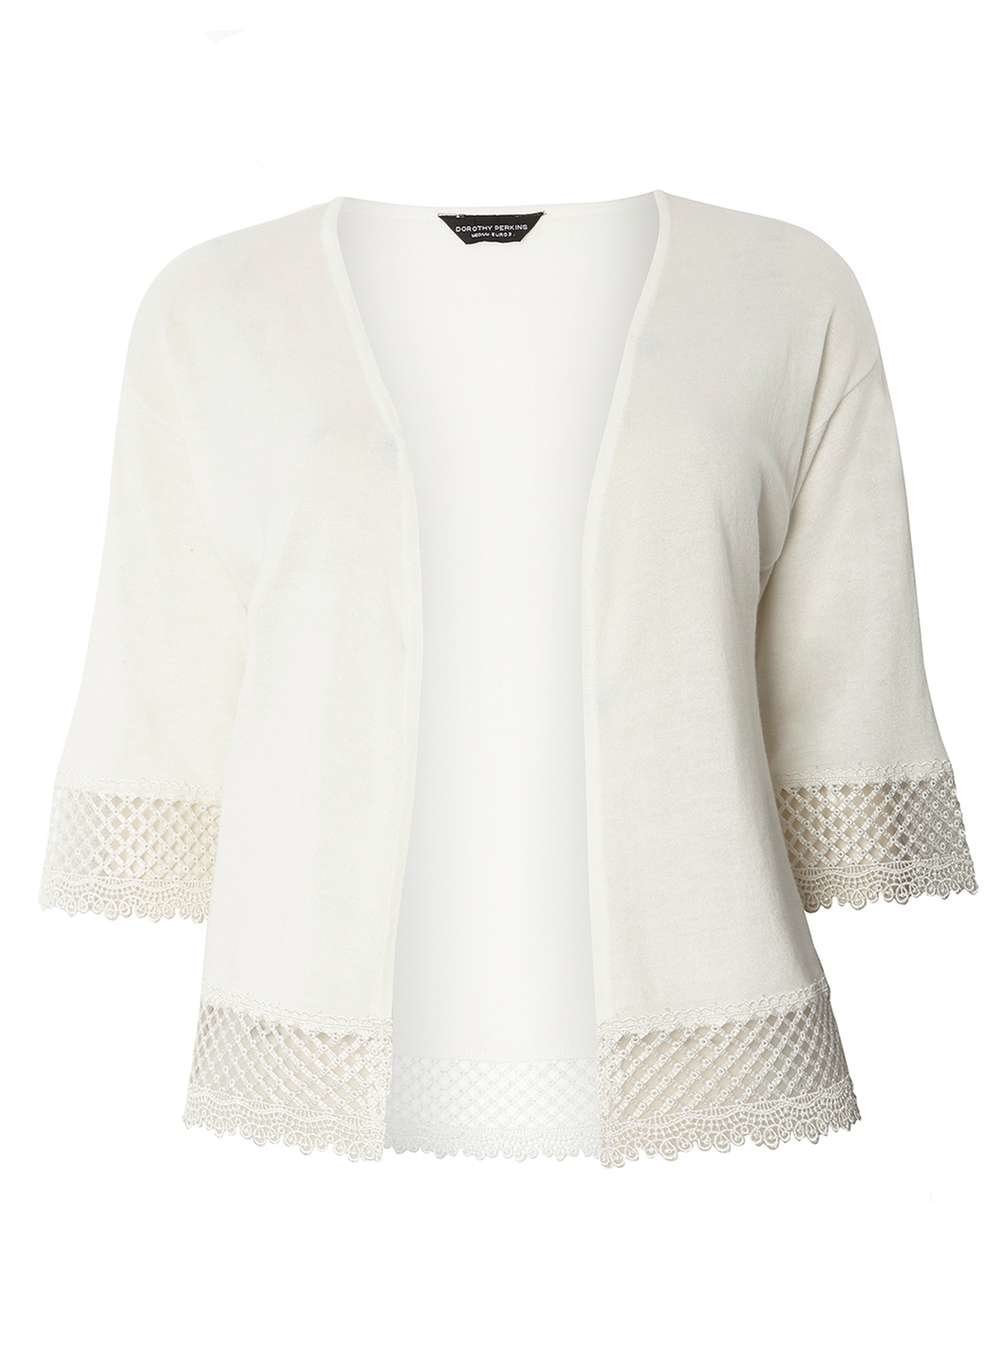 Free shipping and returns on Women's White Cardigans at shopnow-ahoqsxpv.ga